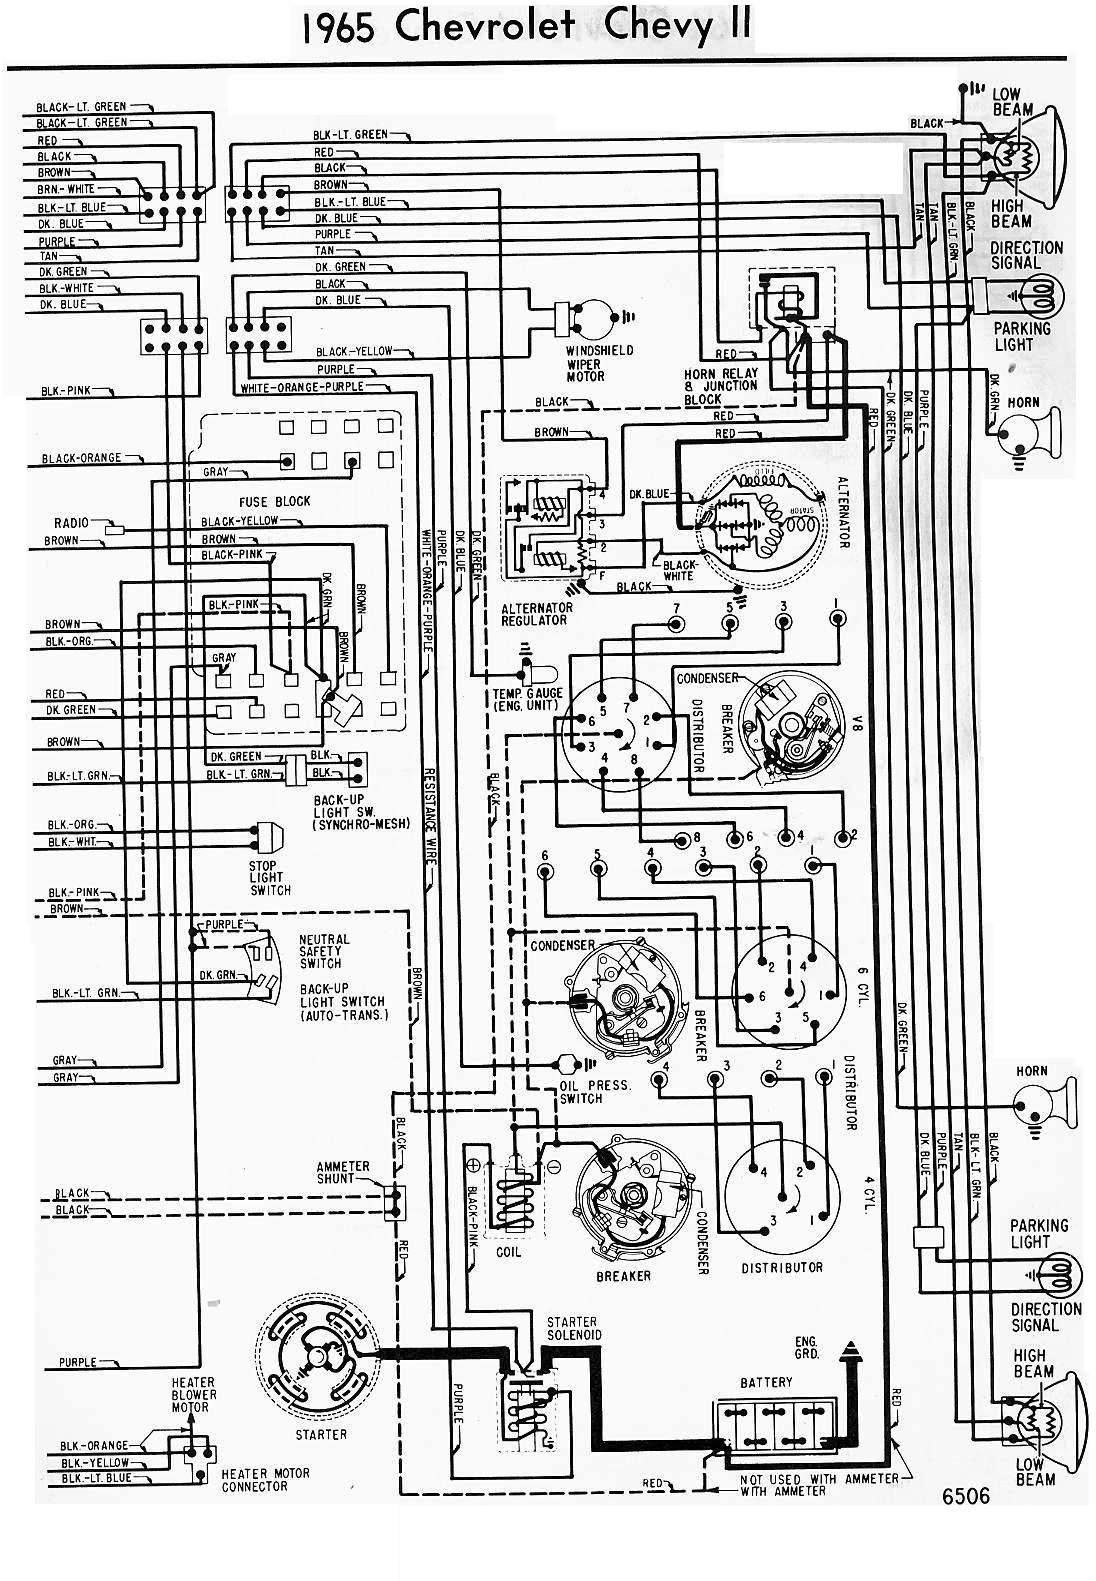 1965 Chevrolet Chevy Ii Wiring Diagram